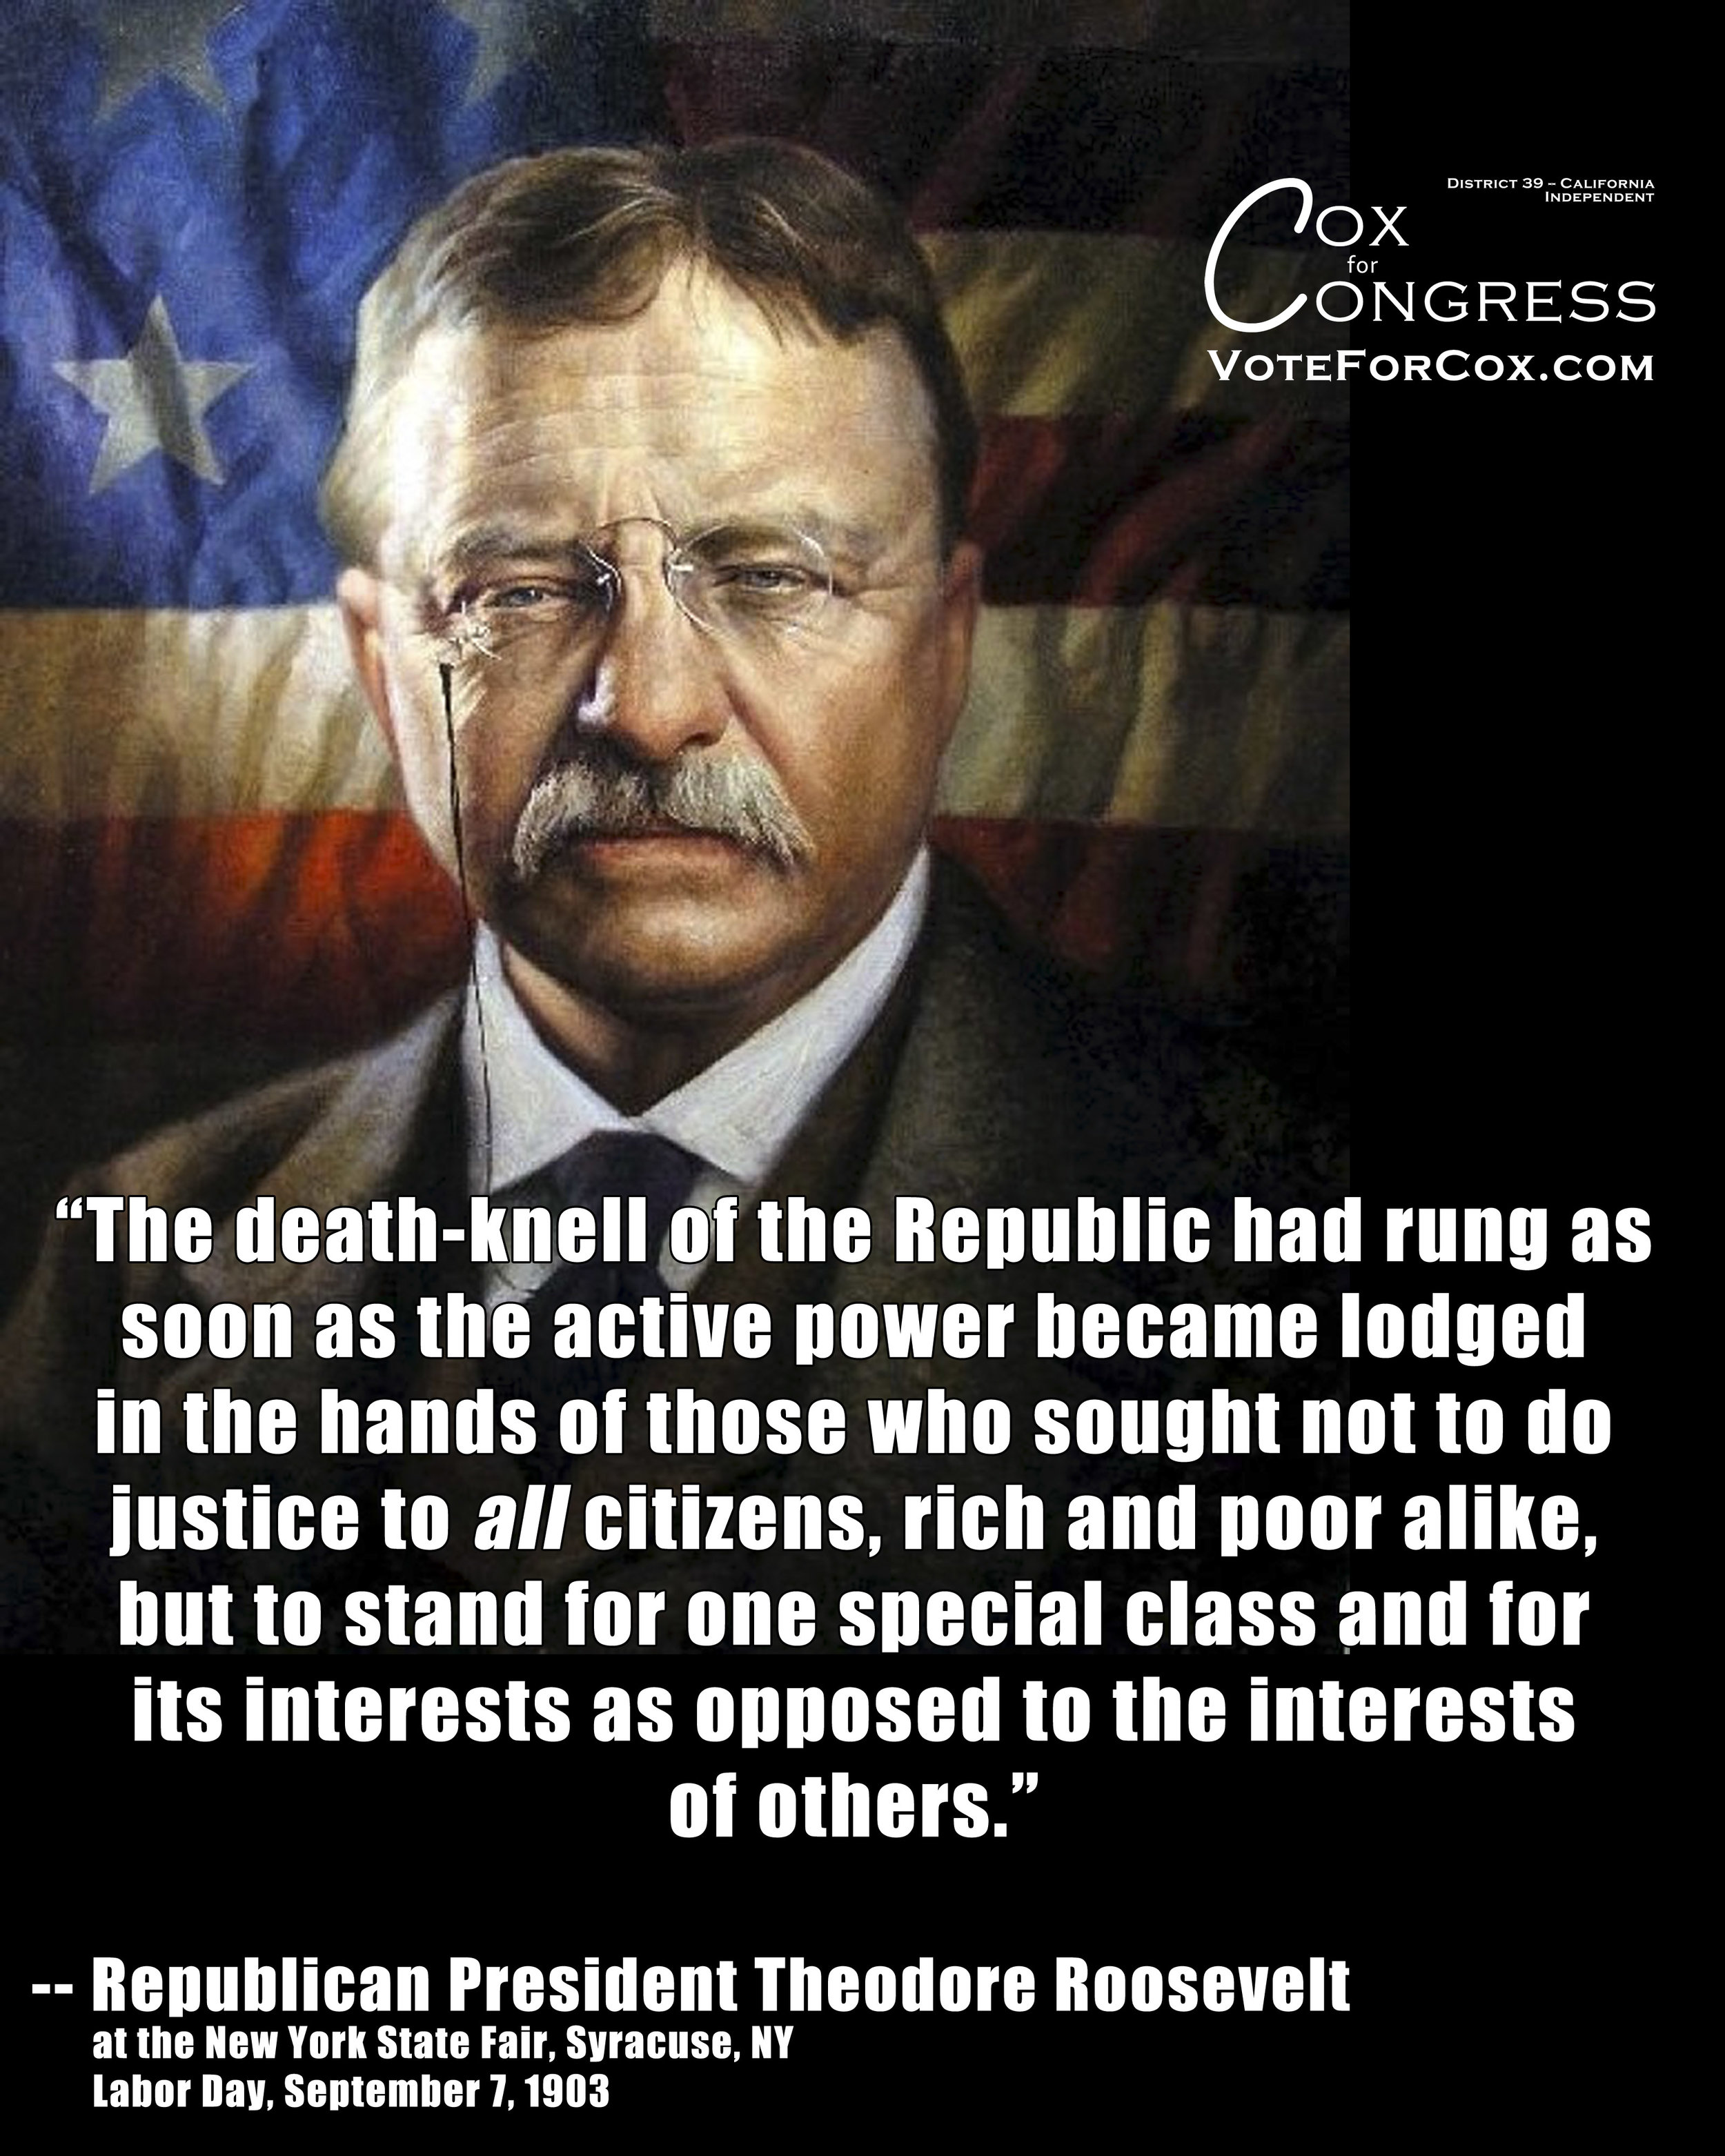 Both of our major political parties today work on behalf of the rich only.